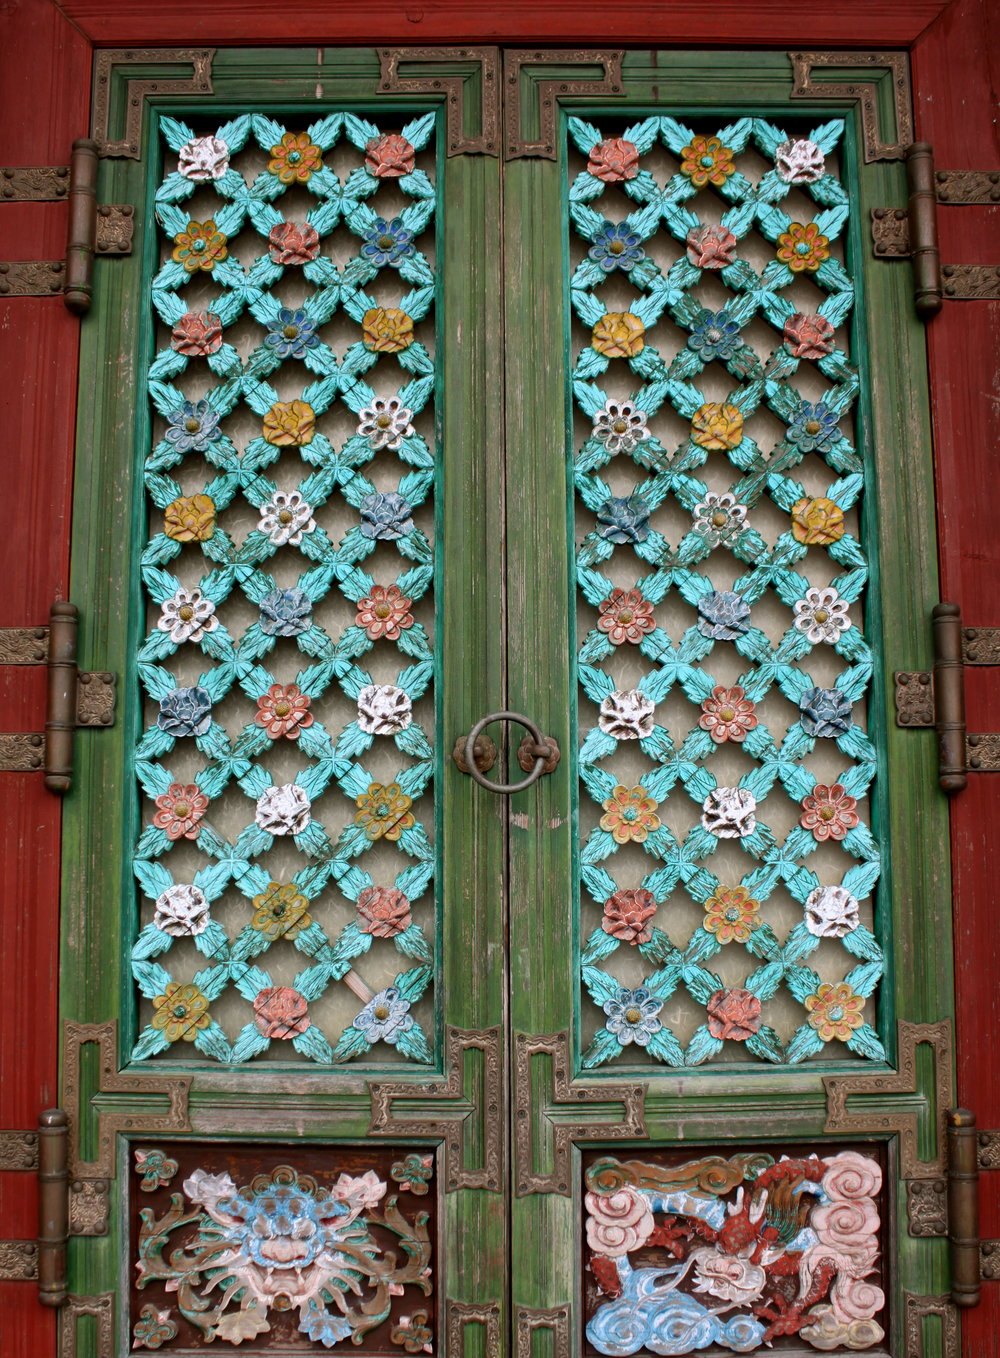 temple-doorway-korea.jpg